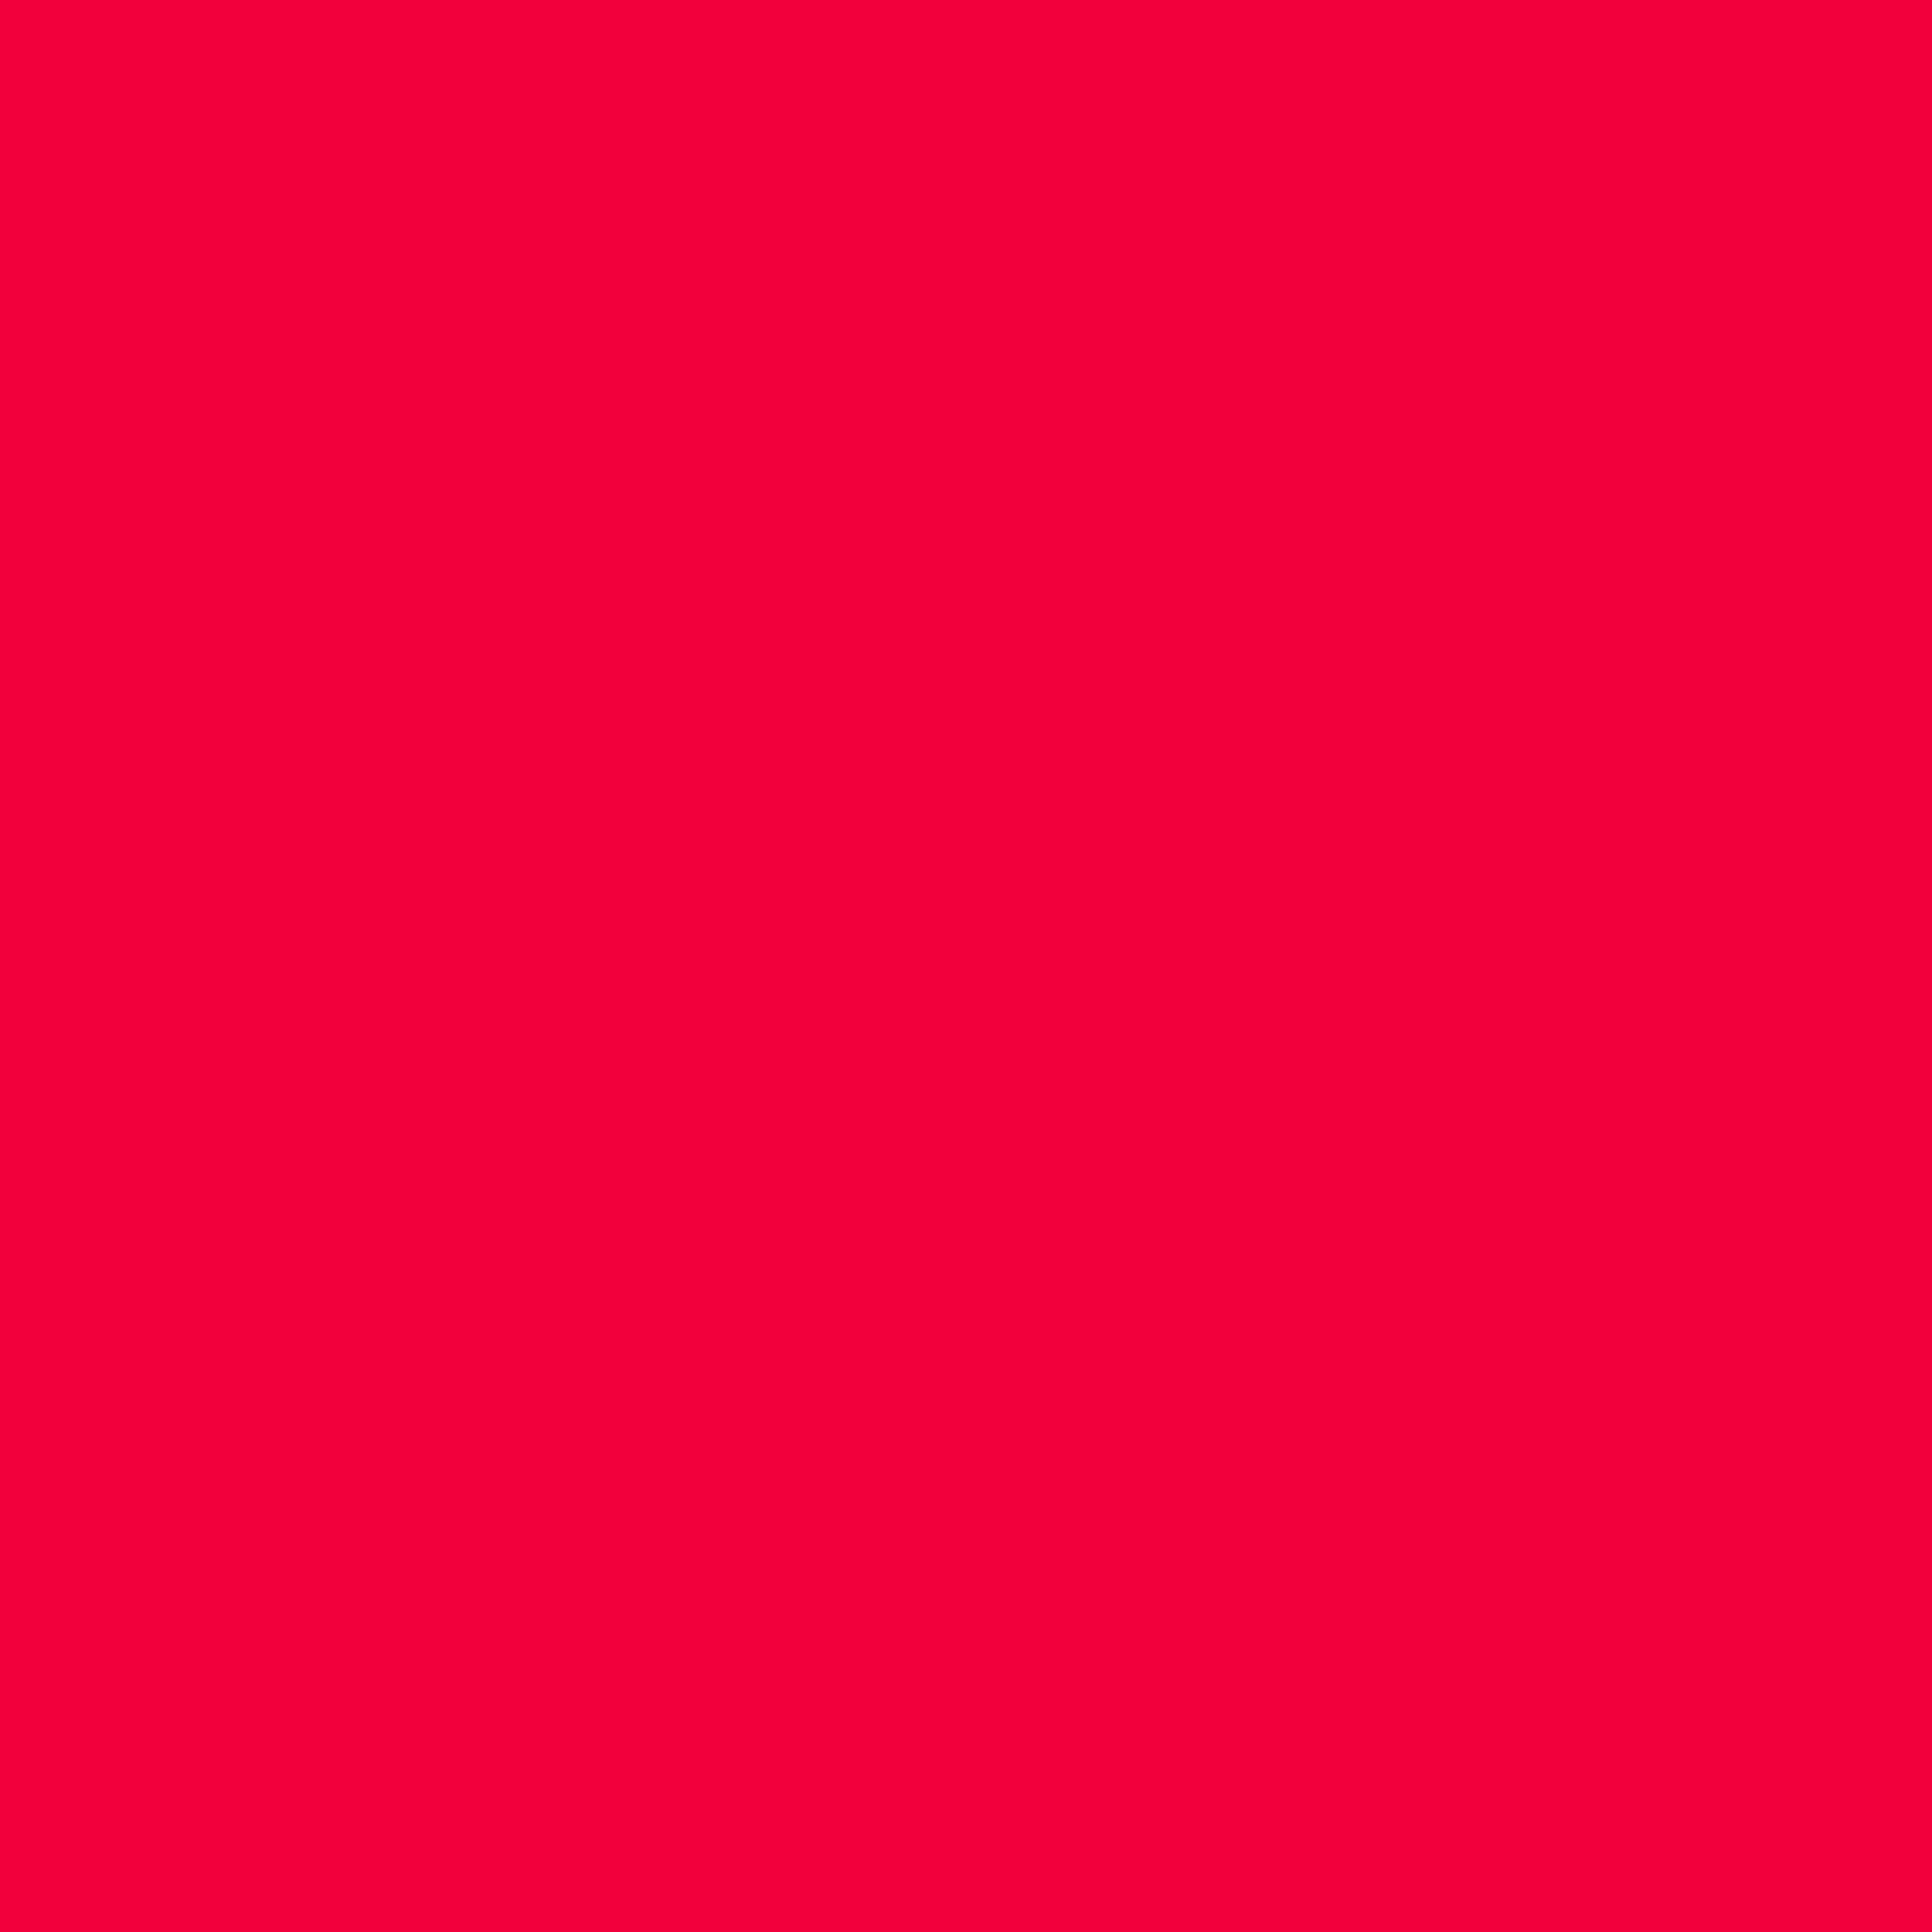 2732x2732 Red Munsell Solid Color Background